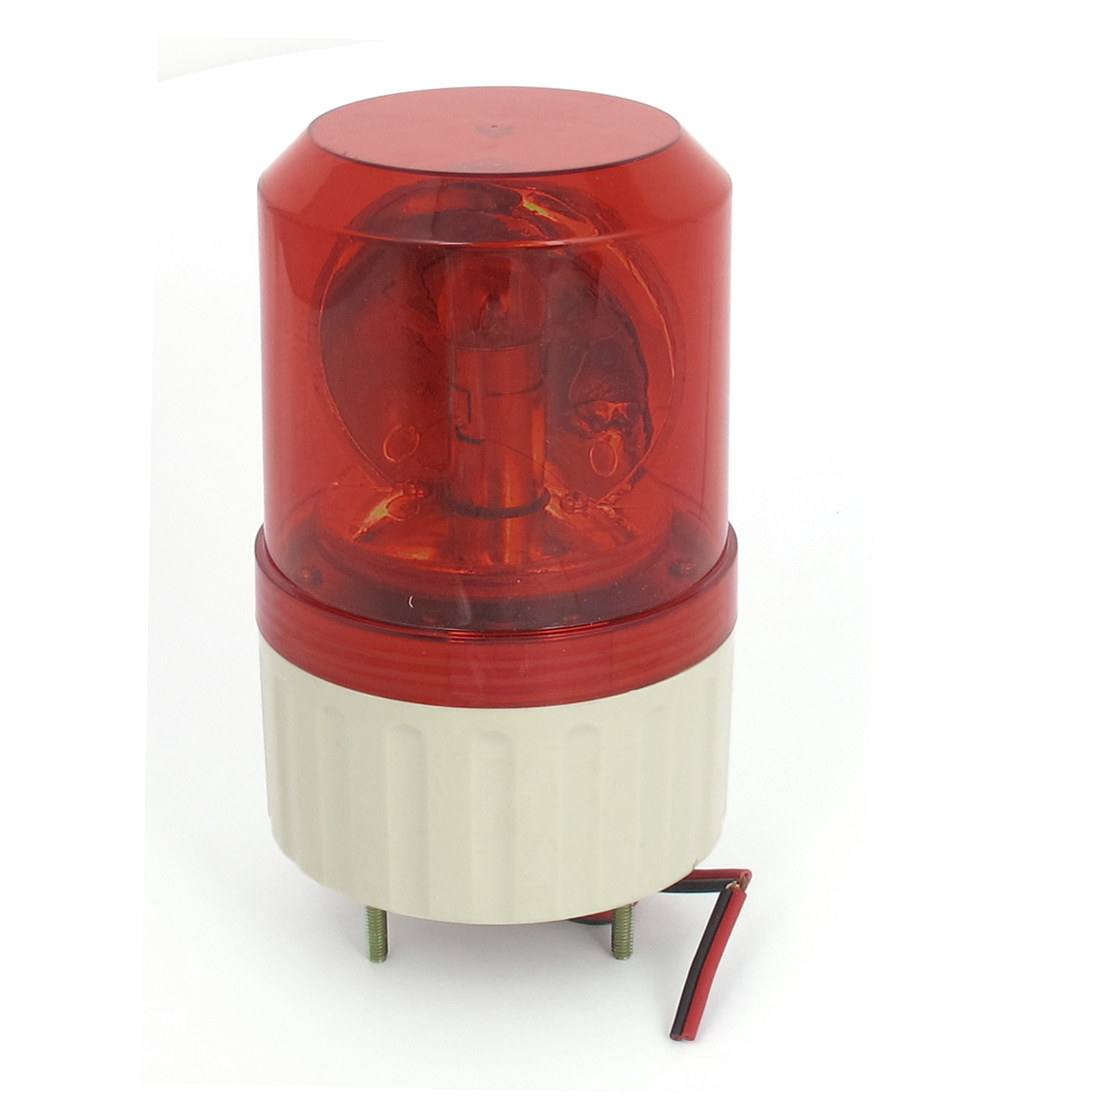 AC 220V Industrial Alarm System Rotating Warning Light Lamp Red